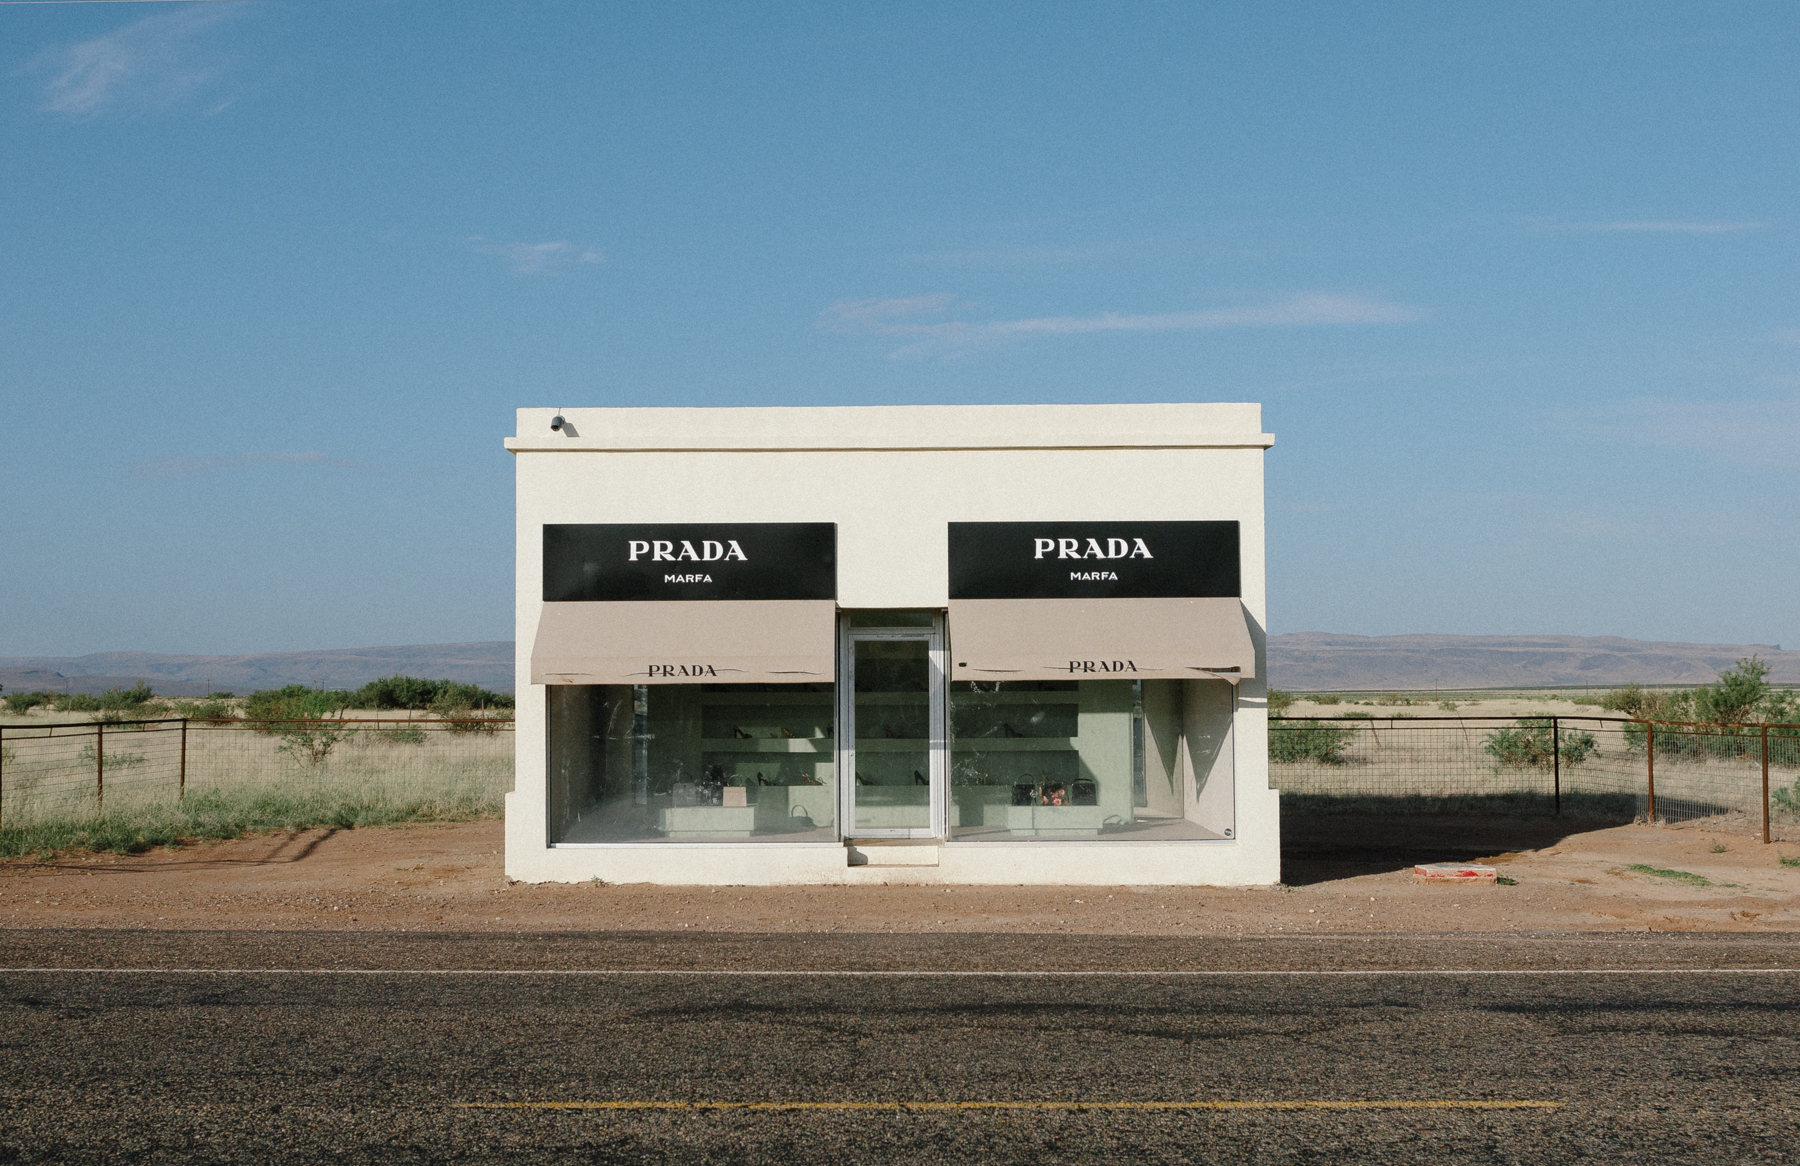 Prada Marfa is probably the world's most famous Prada shop - except it isn't a shop, it's an art installation (complete with Prada handbags and shoes) on a isolated stretch of road outside of Marfa. It's bizarre and wonderful.